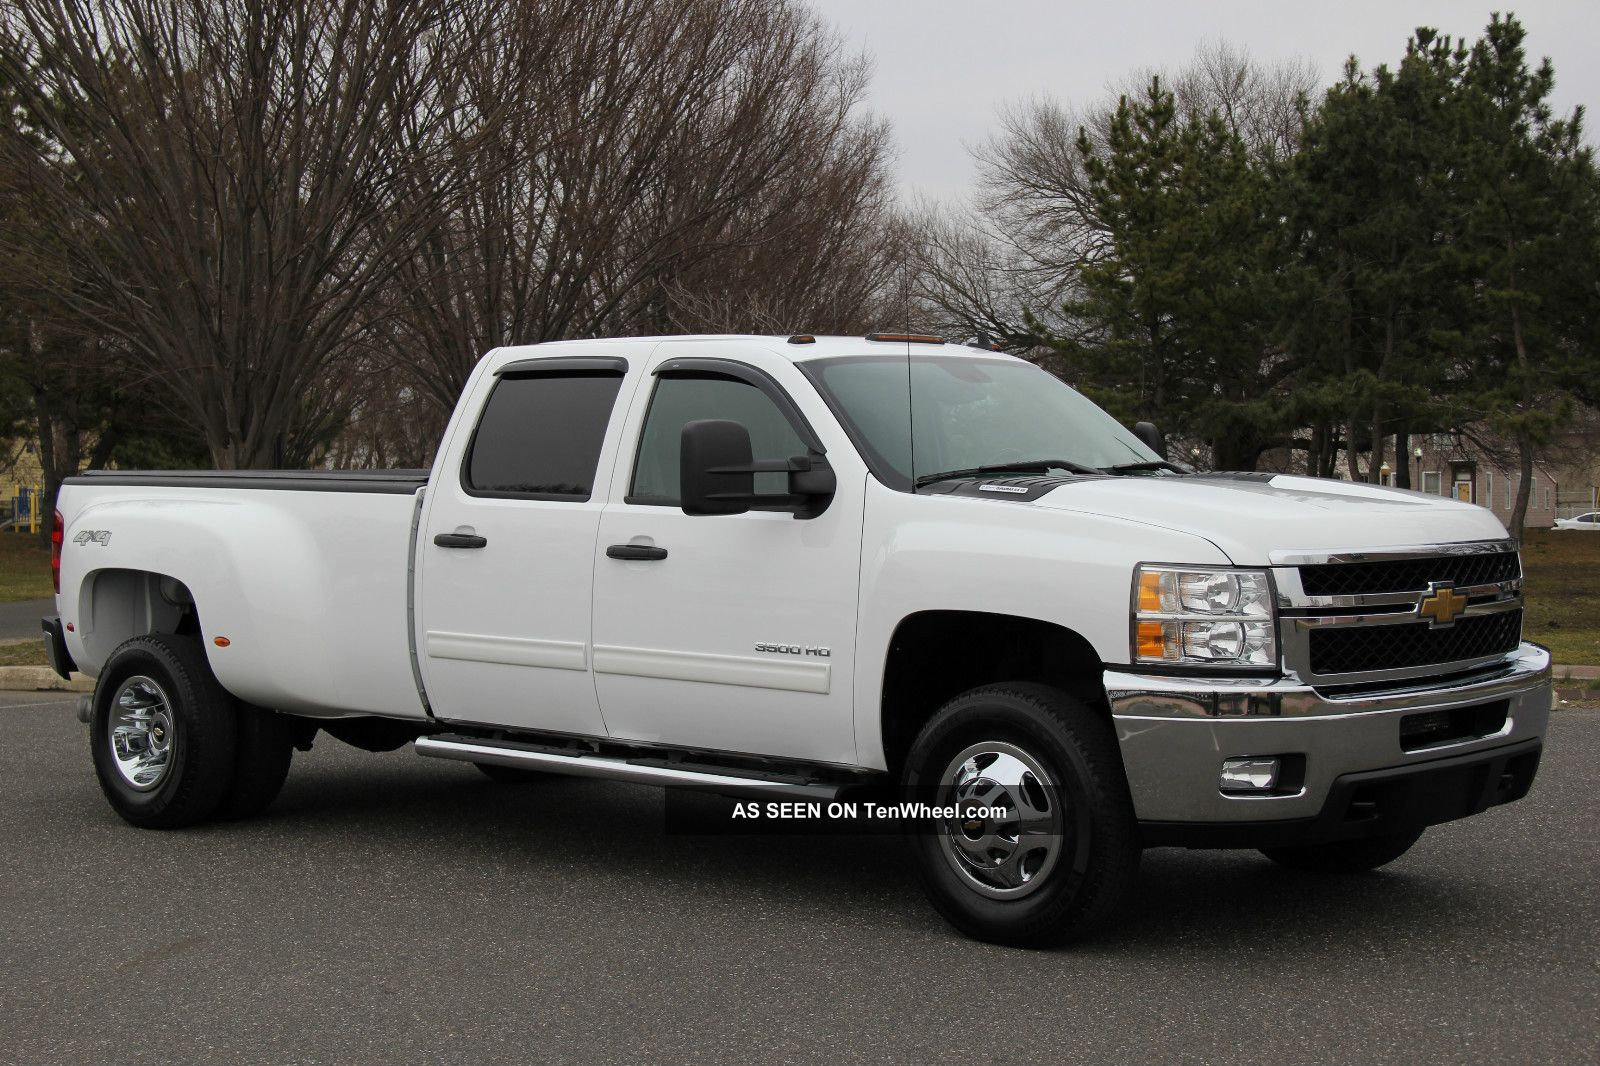 2011 Chevrolet 3500 Crew Lt 6.  6l Diesel Dually 1 - Owner 4x4 Drw Silverado 3500 photo